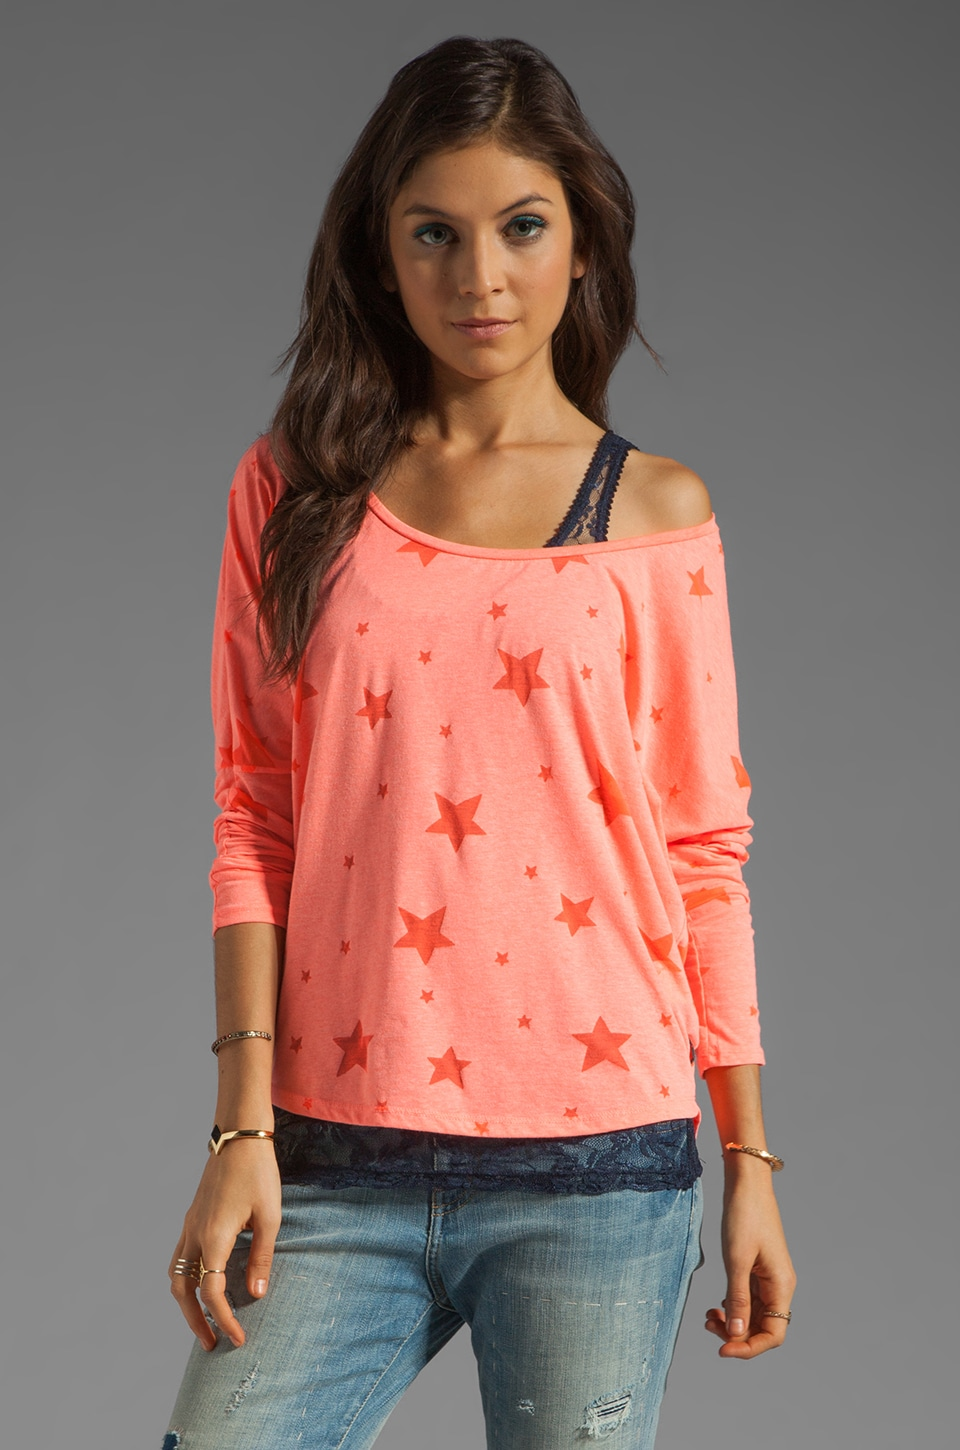 Maison Scotch Lace Tank with Star Tee in Coral